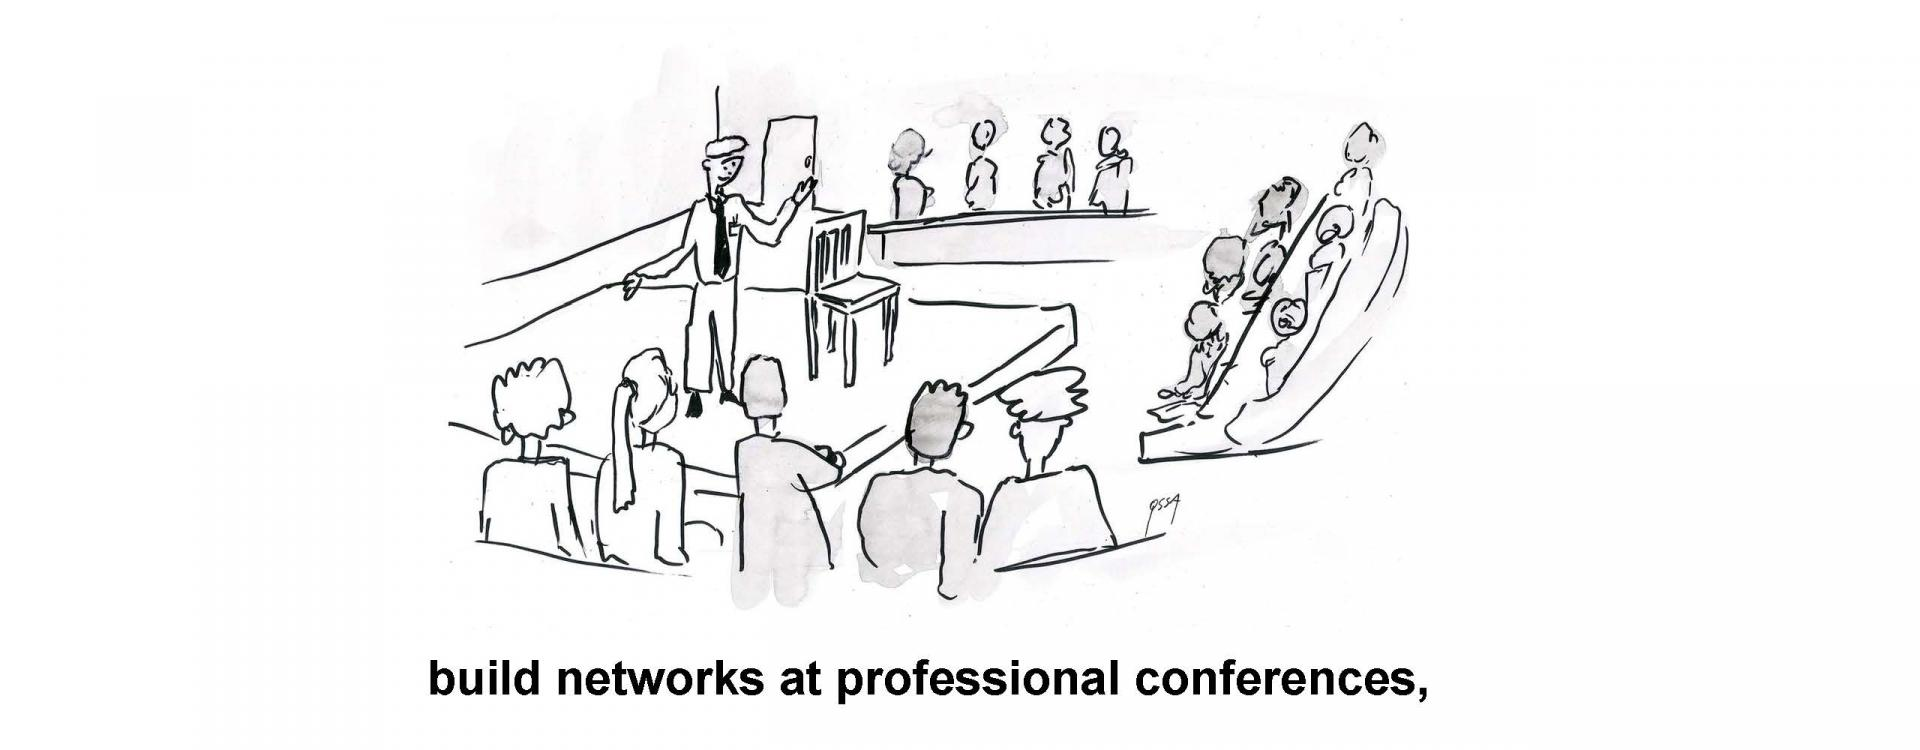 build networks at professional conferences,